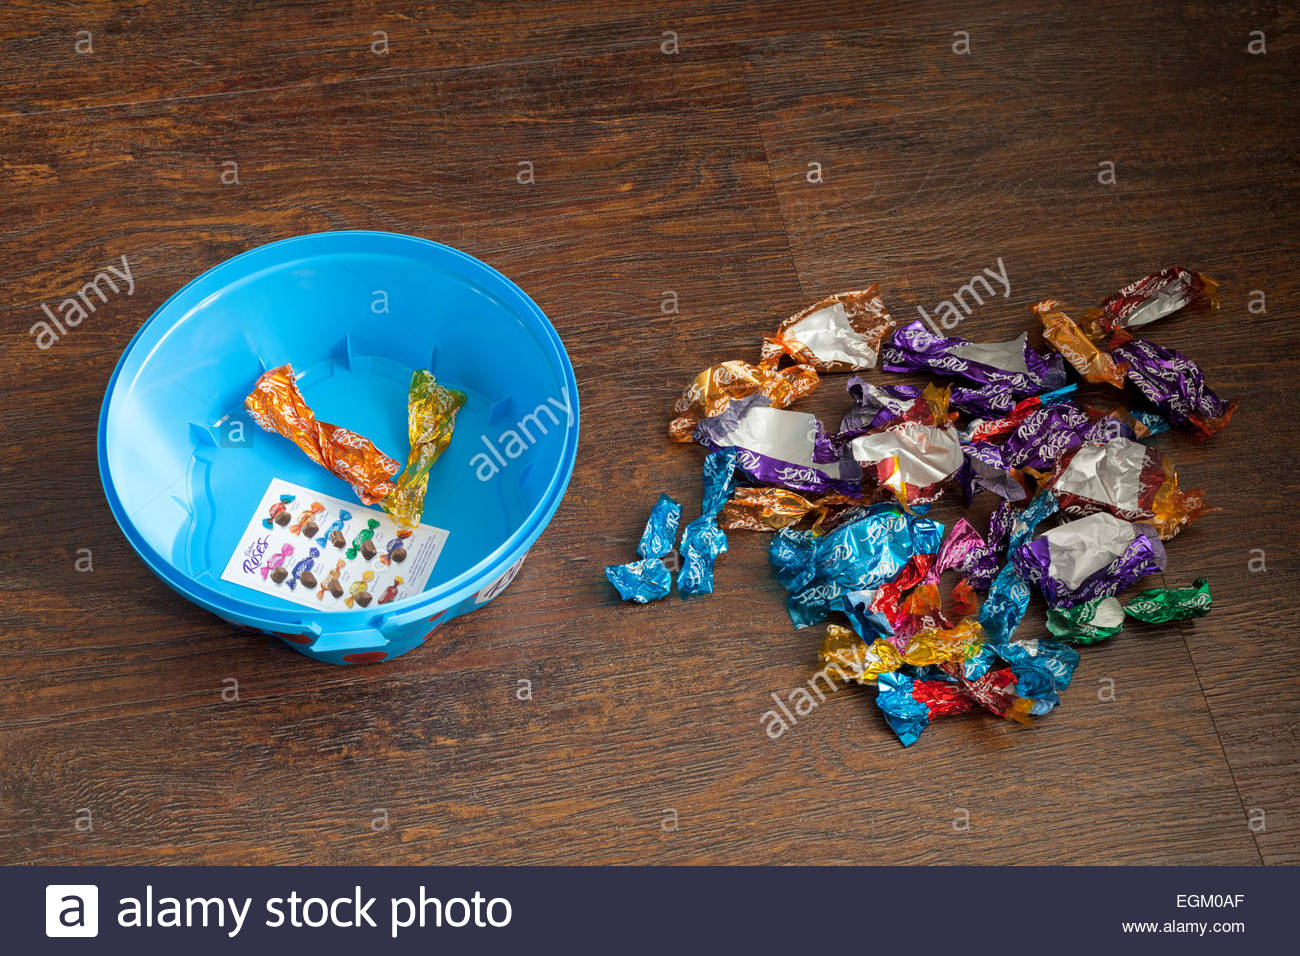 An empty tub of roses chocolates and discarded wrappers - Stock Image